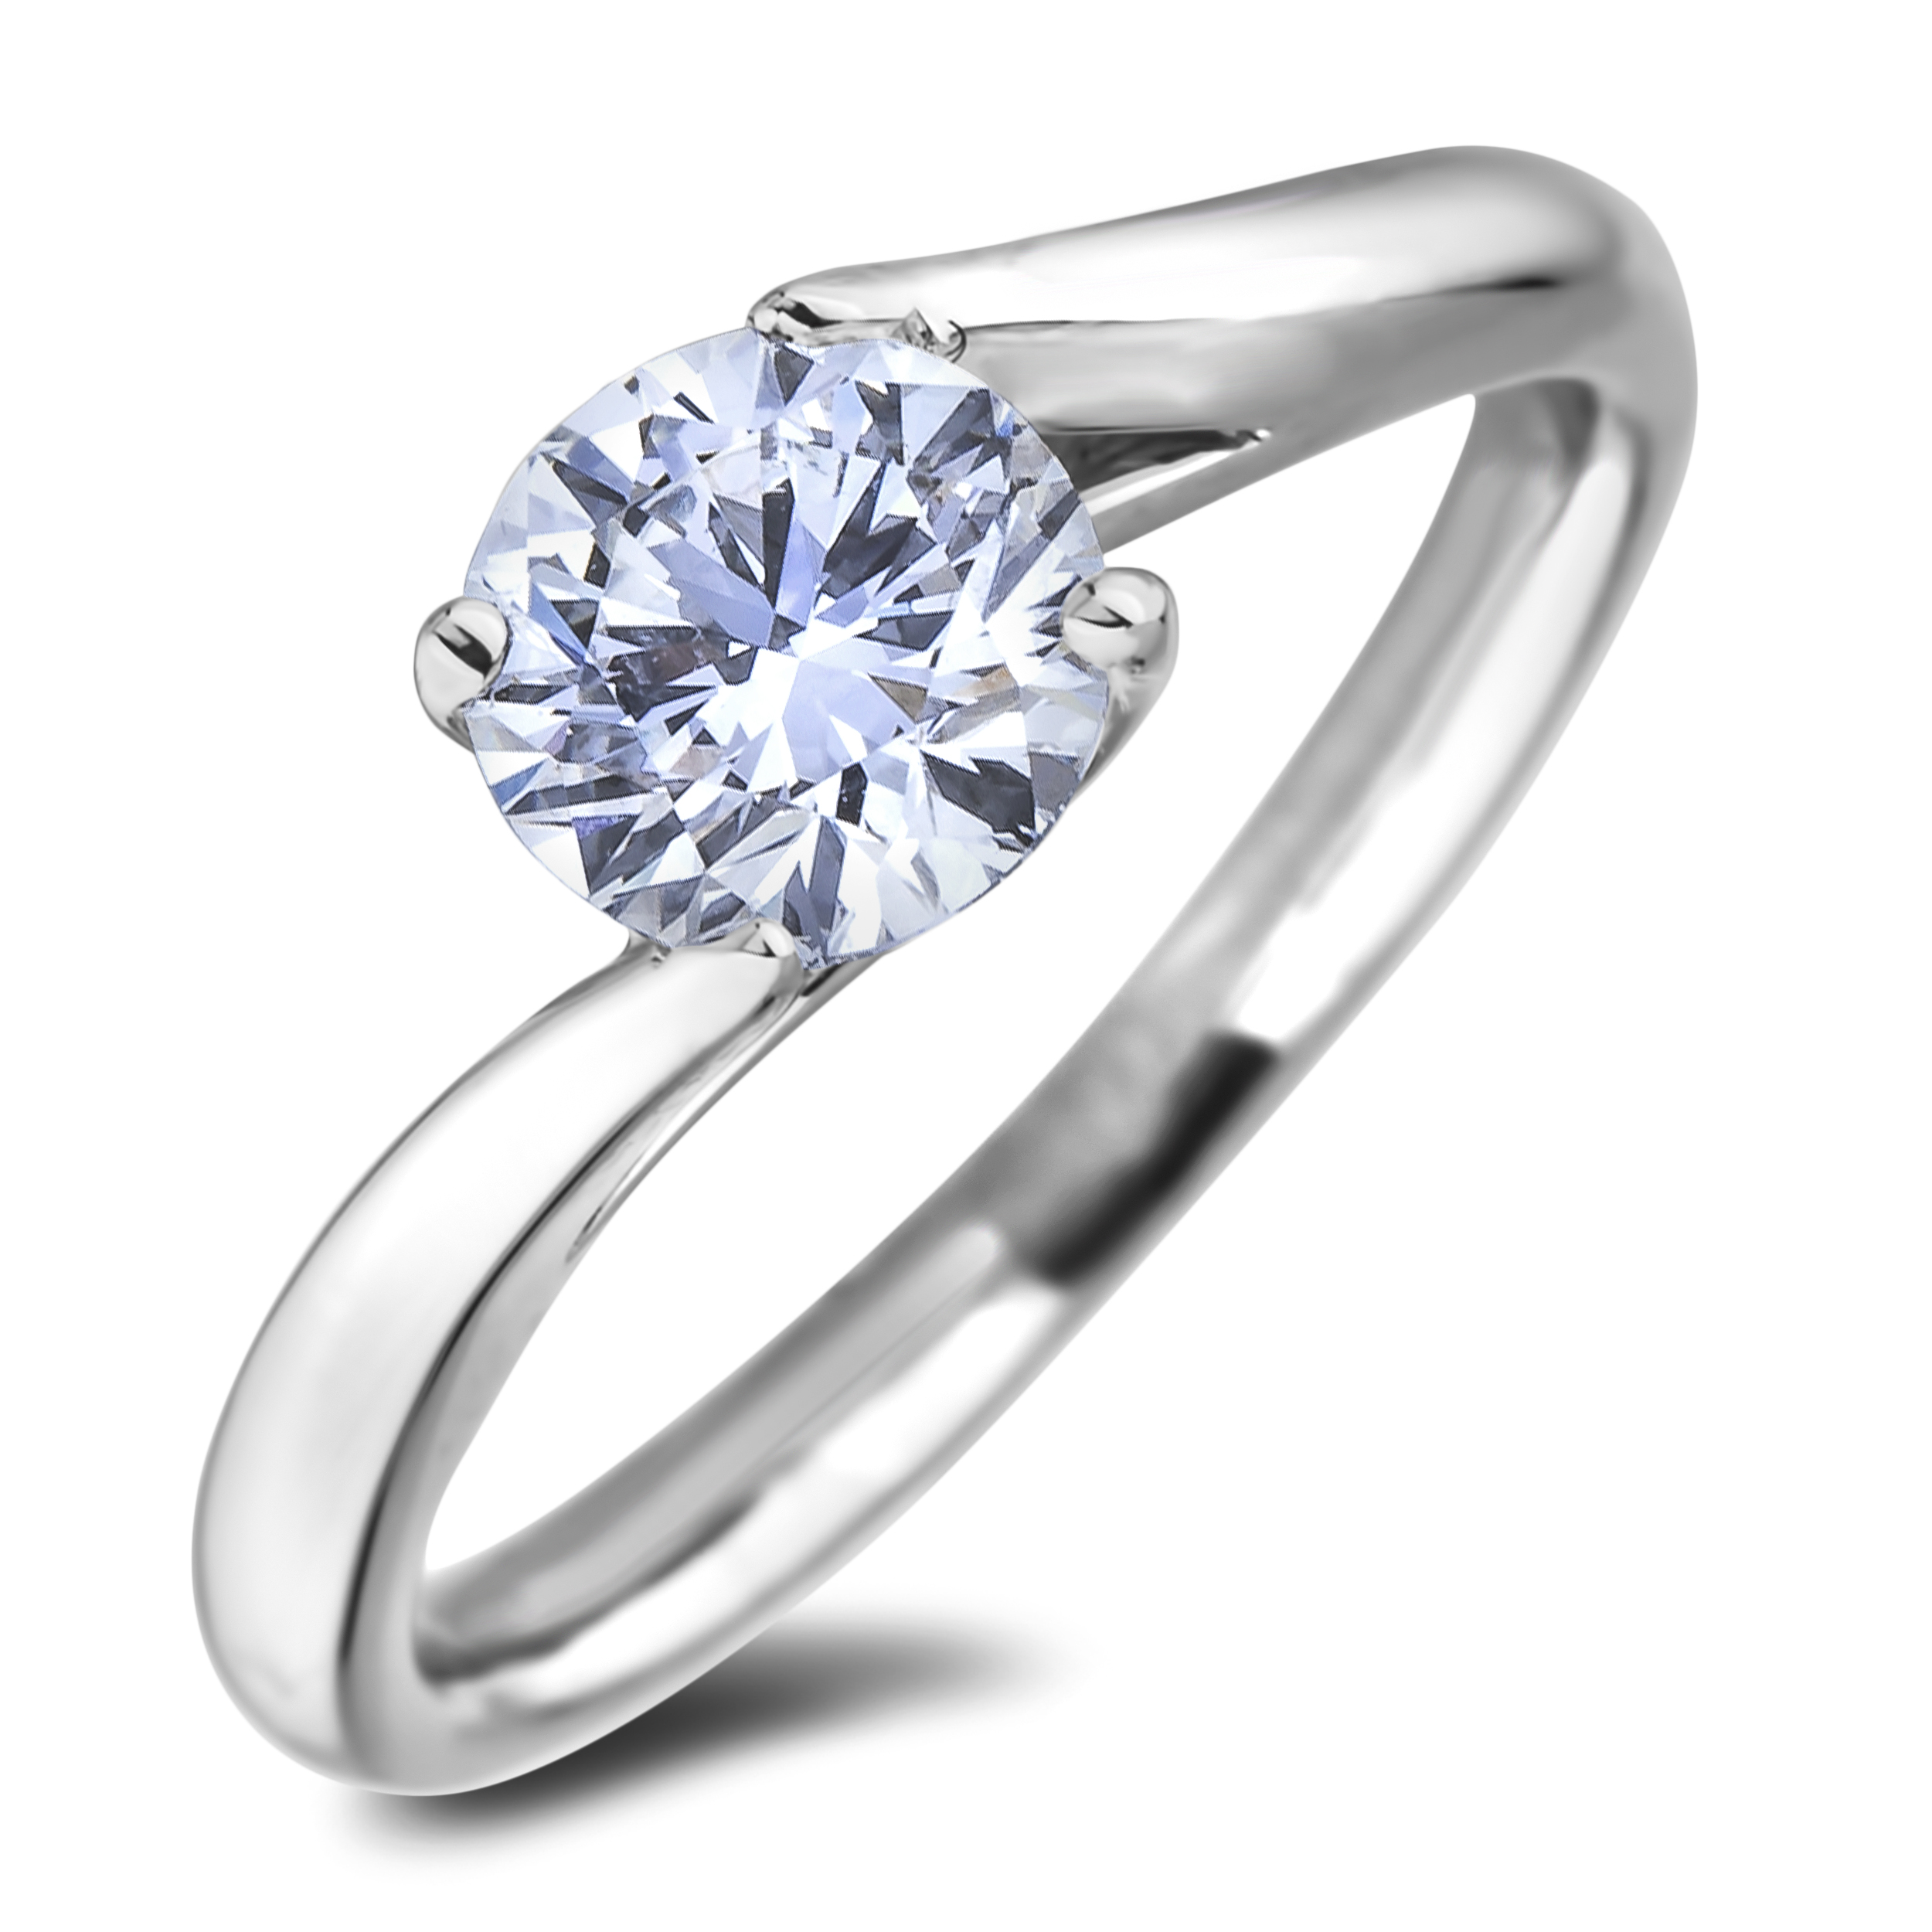 Diamond Solitaire Rings SGR1246 (Rings)